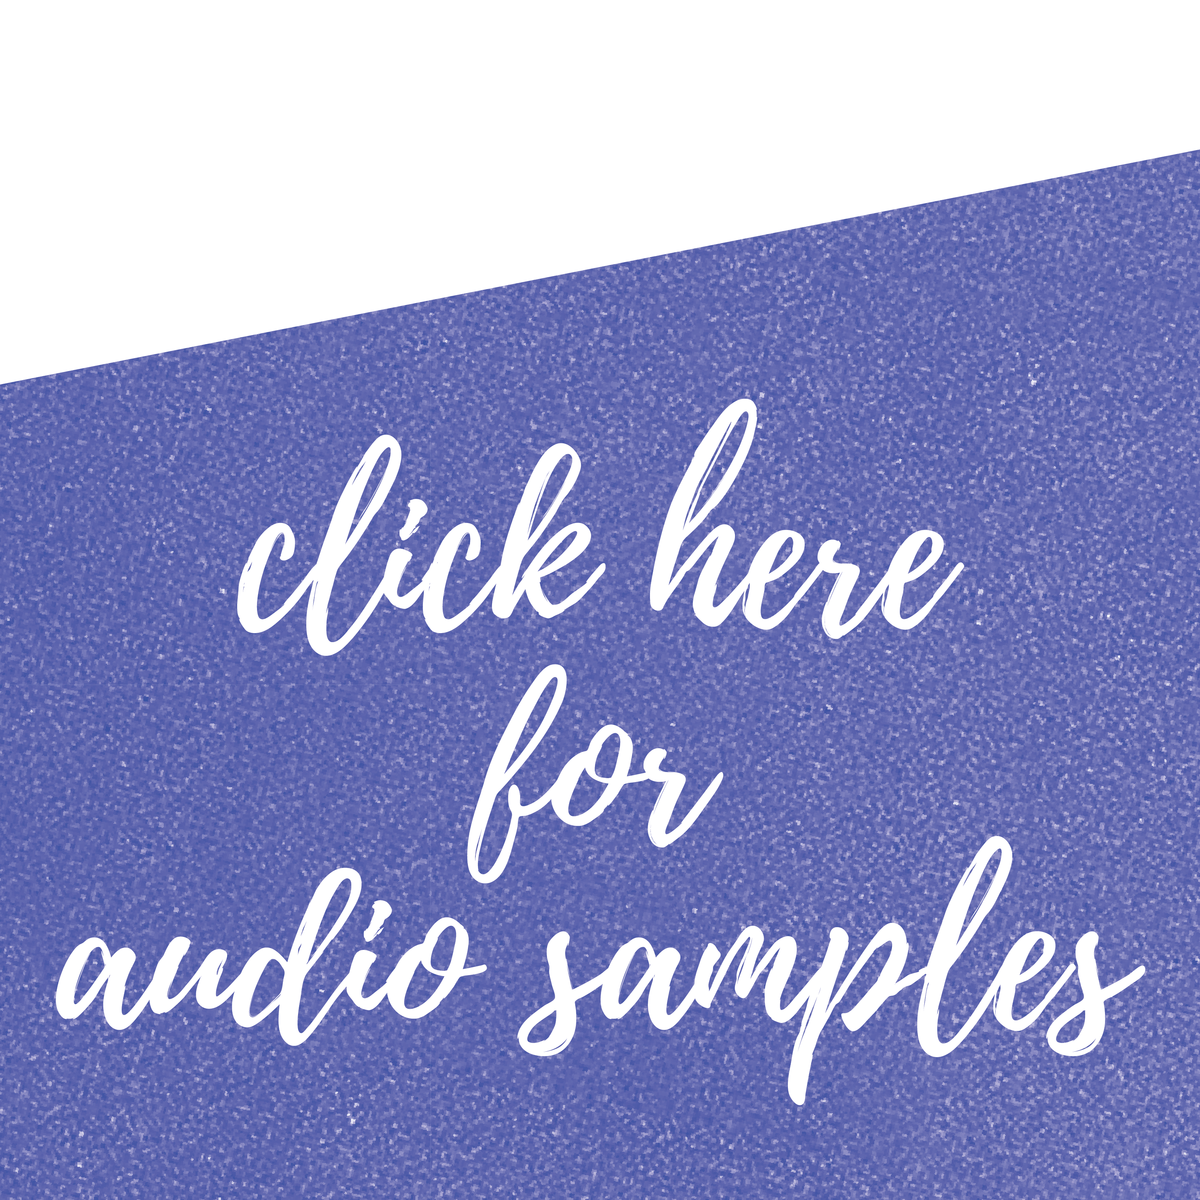 graphic_for_audio_link_-01-01.png